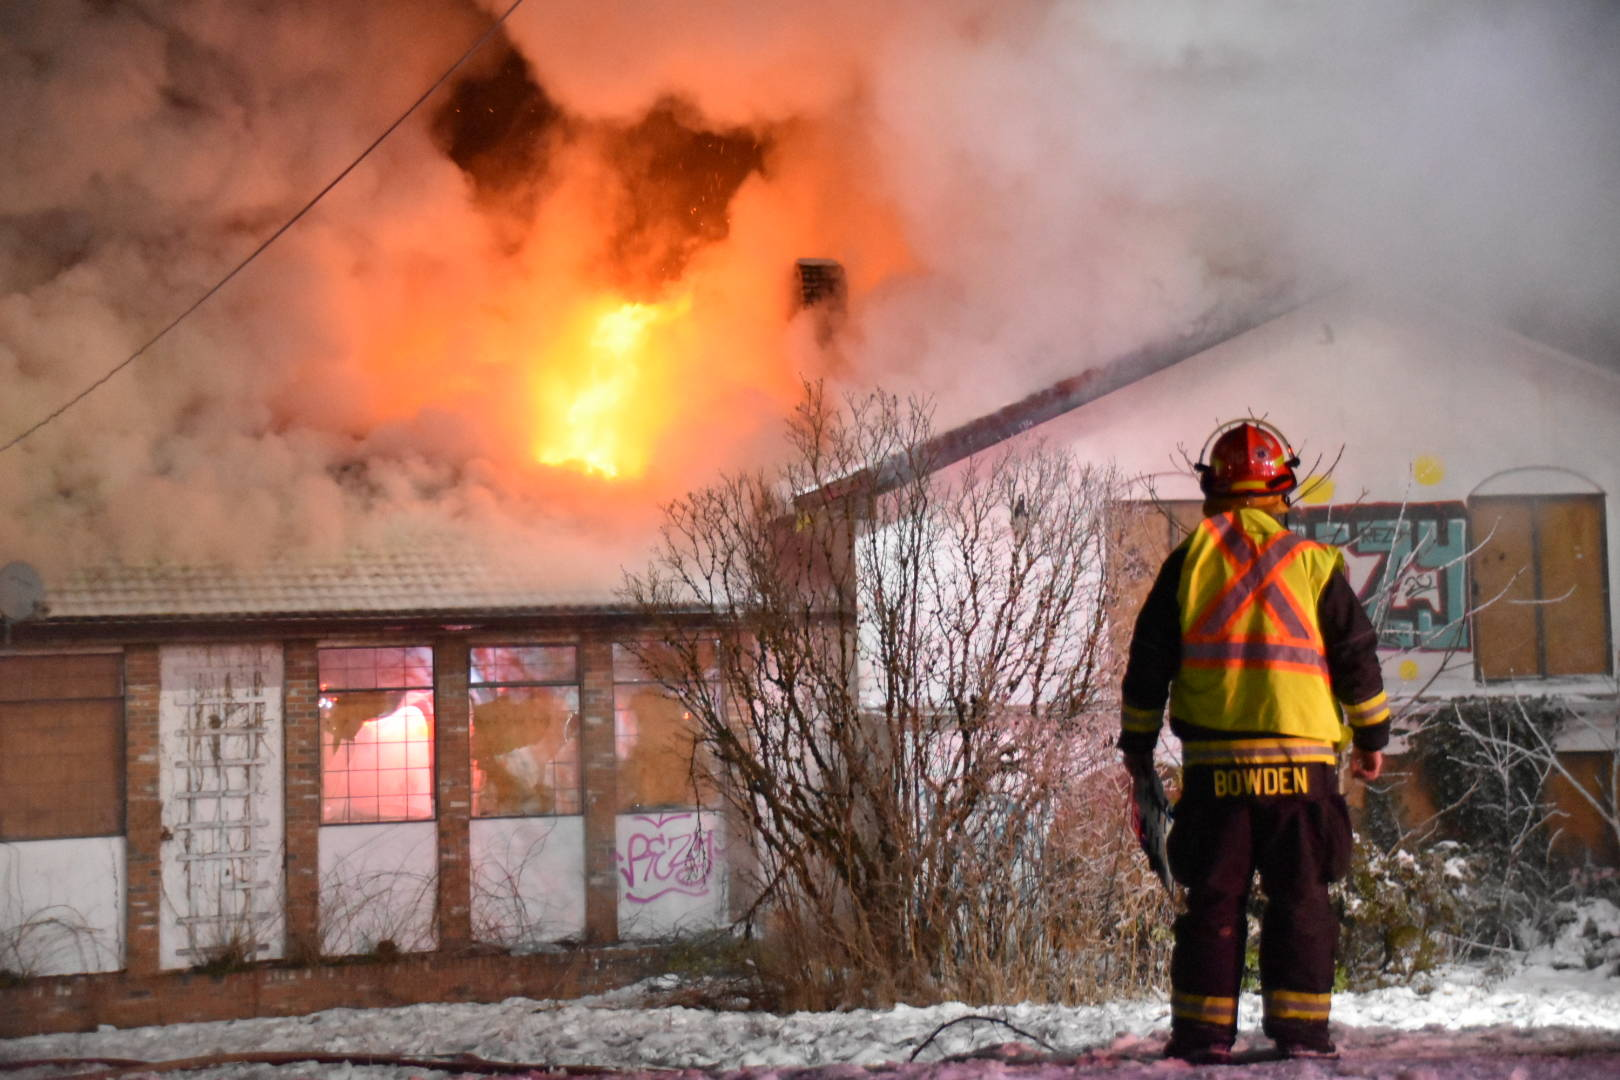 Township of Langley firefighters reported to a house fire in the 20500 block on 78th Ave. on Tuesday, Dec. 22, 2020. (Curtis Kreklau/Special to Langley Advance Times)